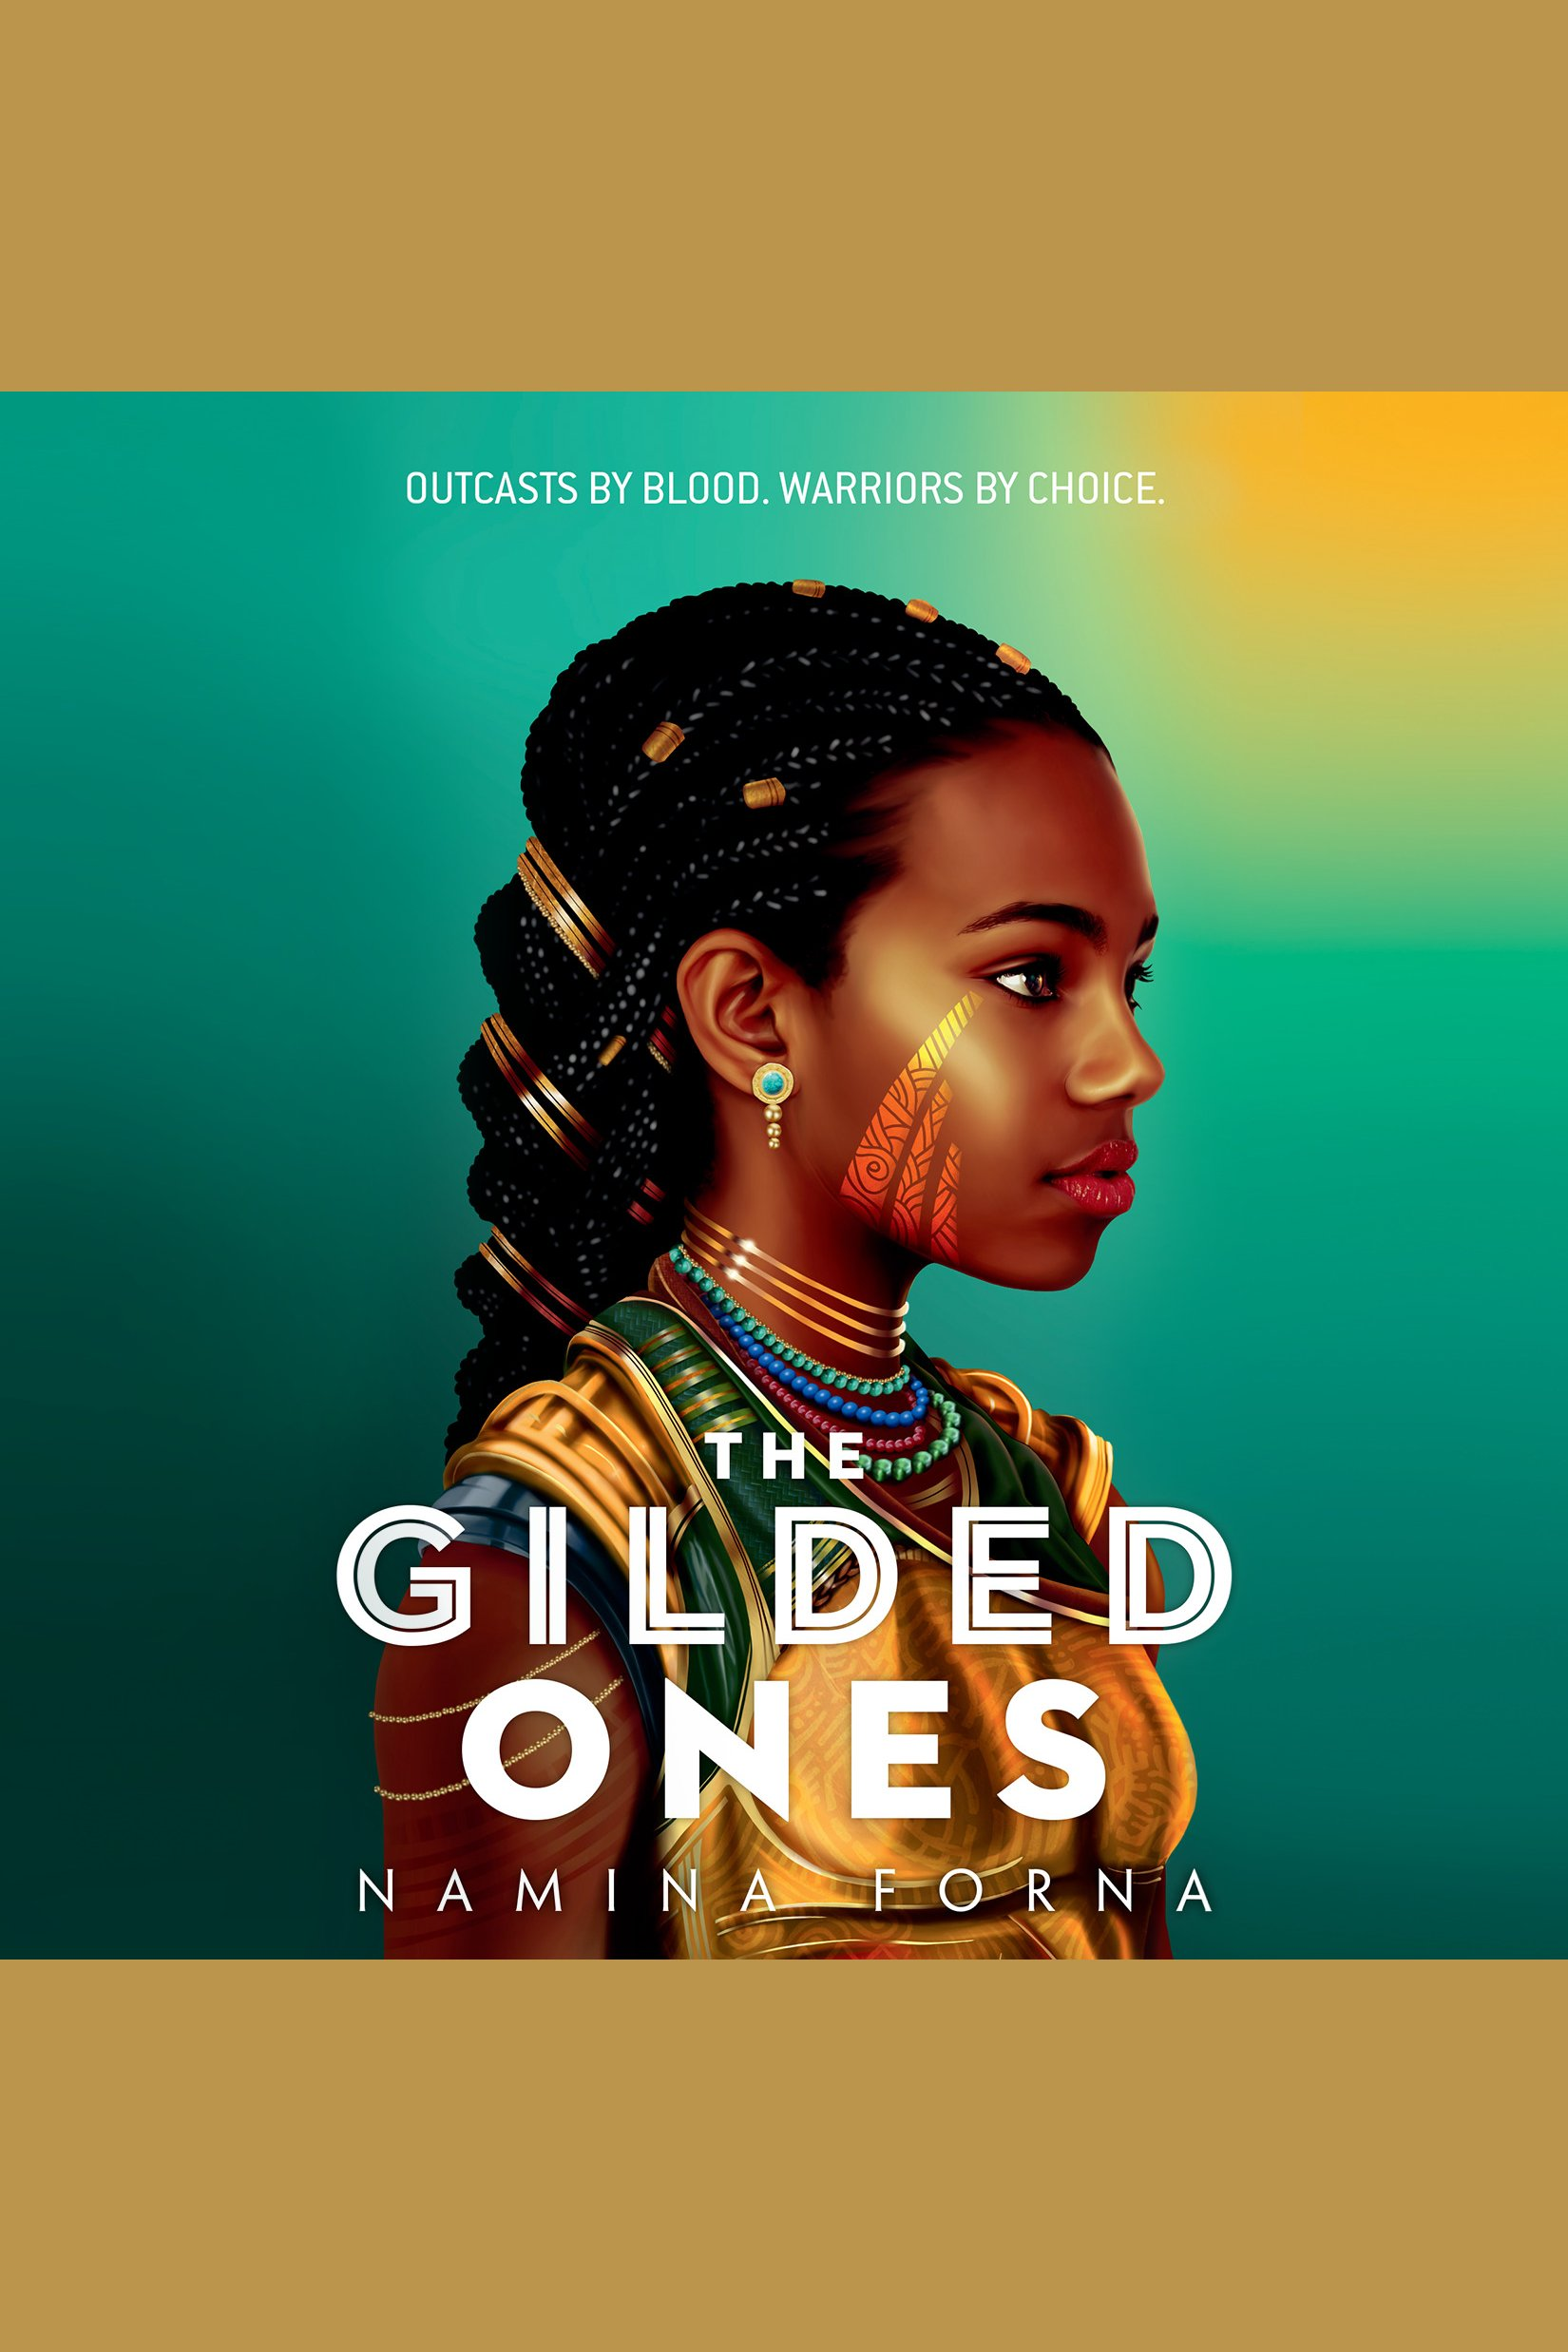 Cover Image of The Gilded One